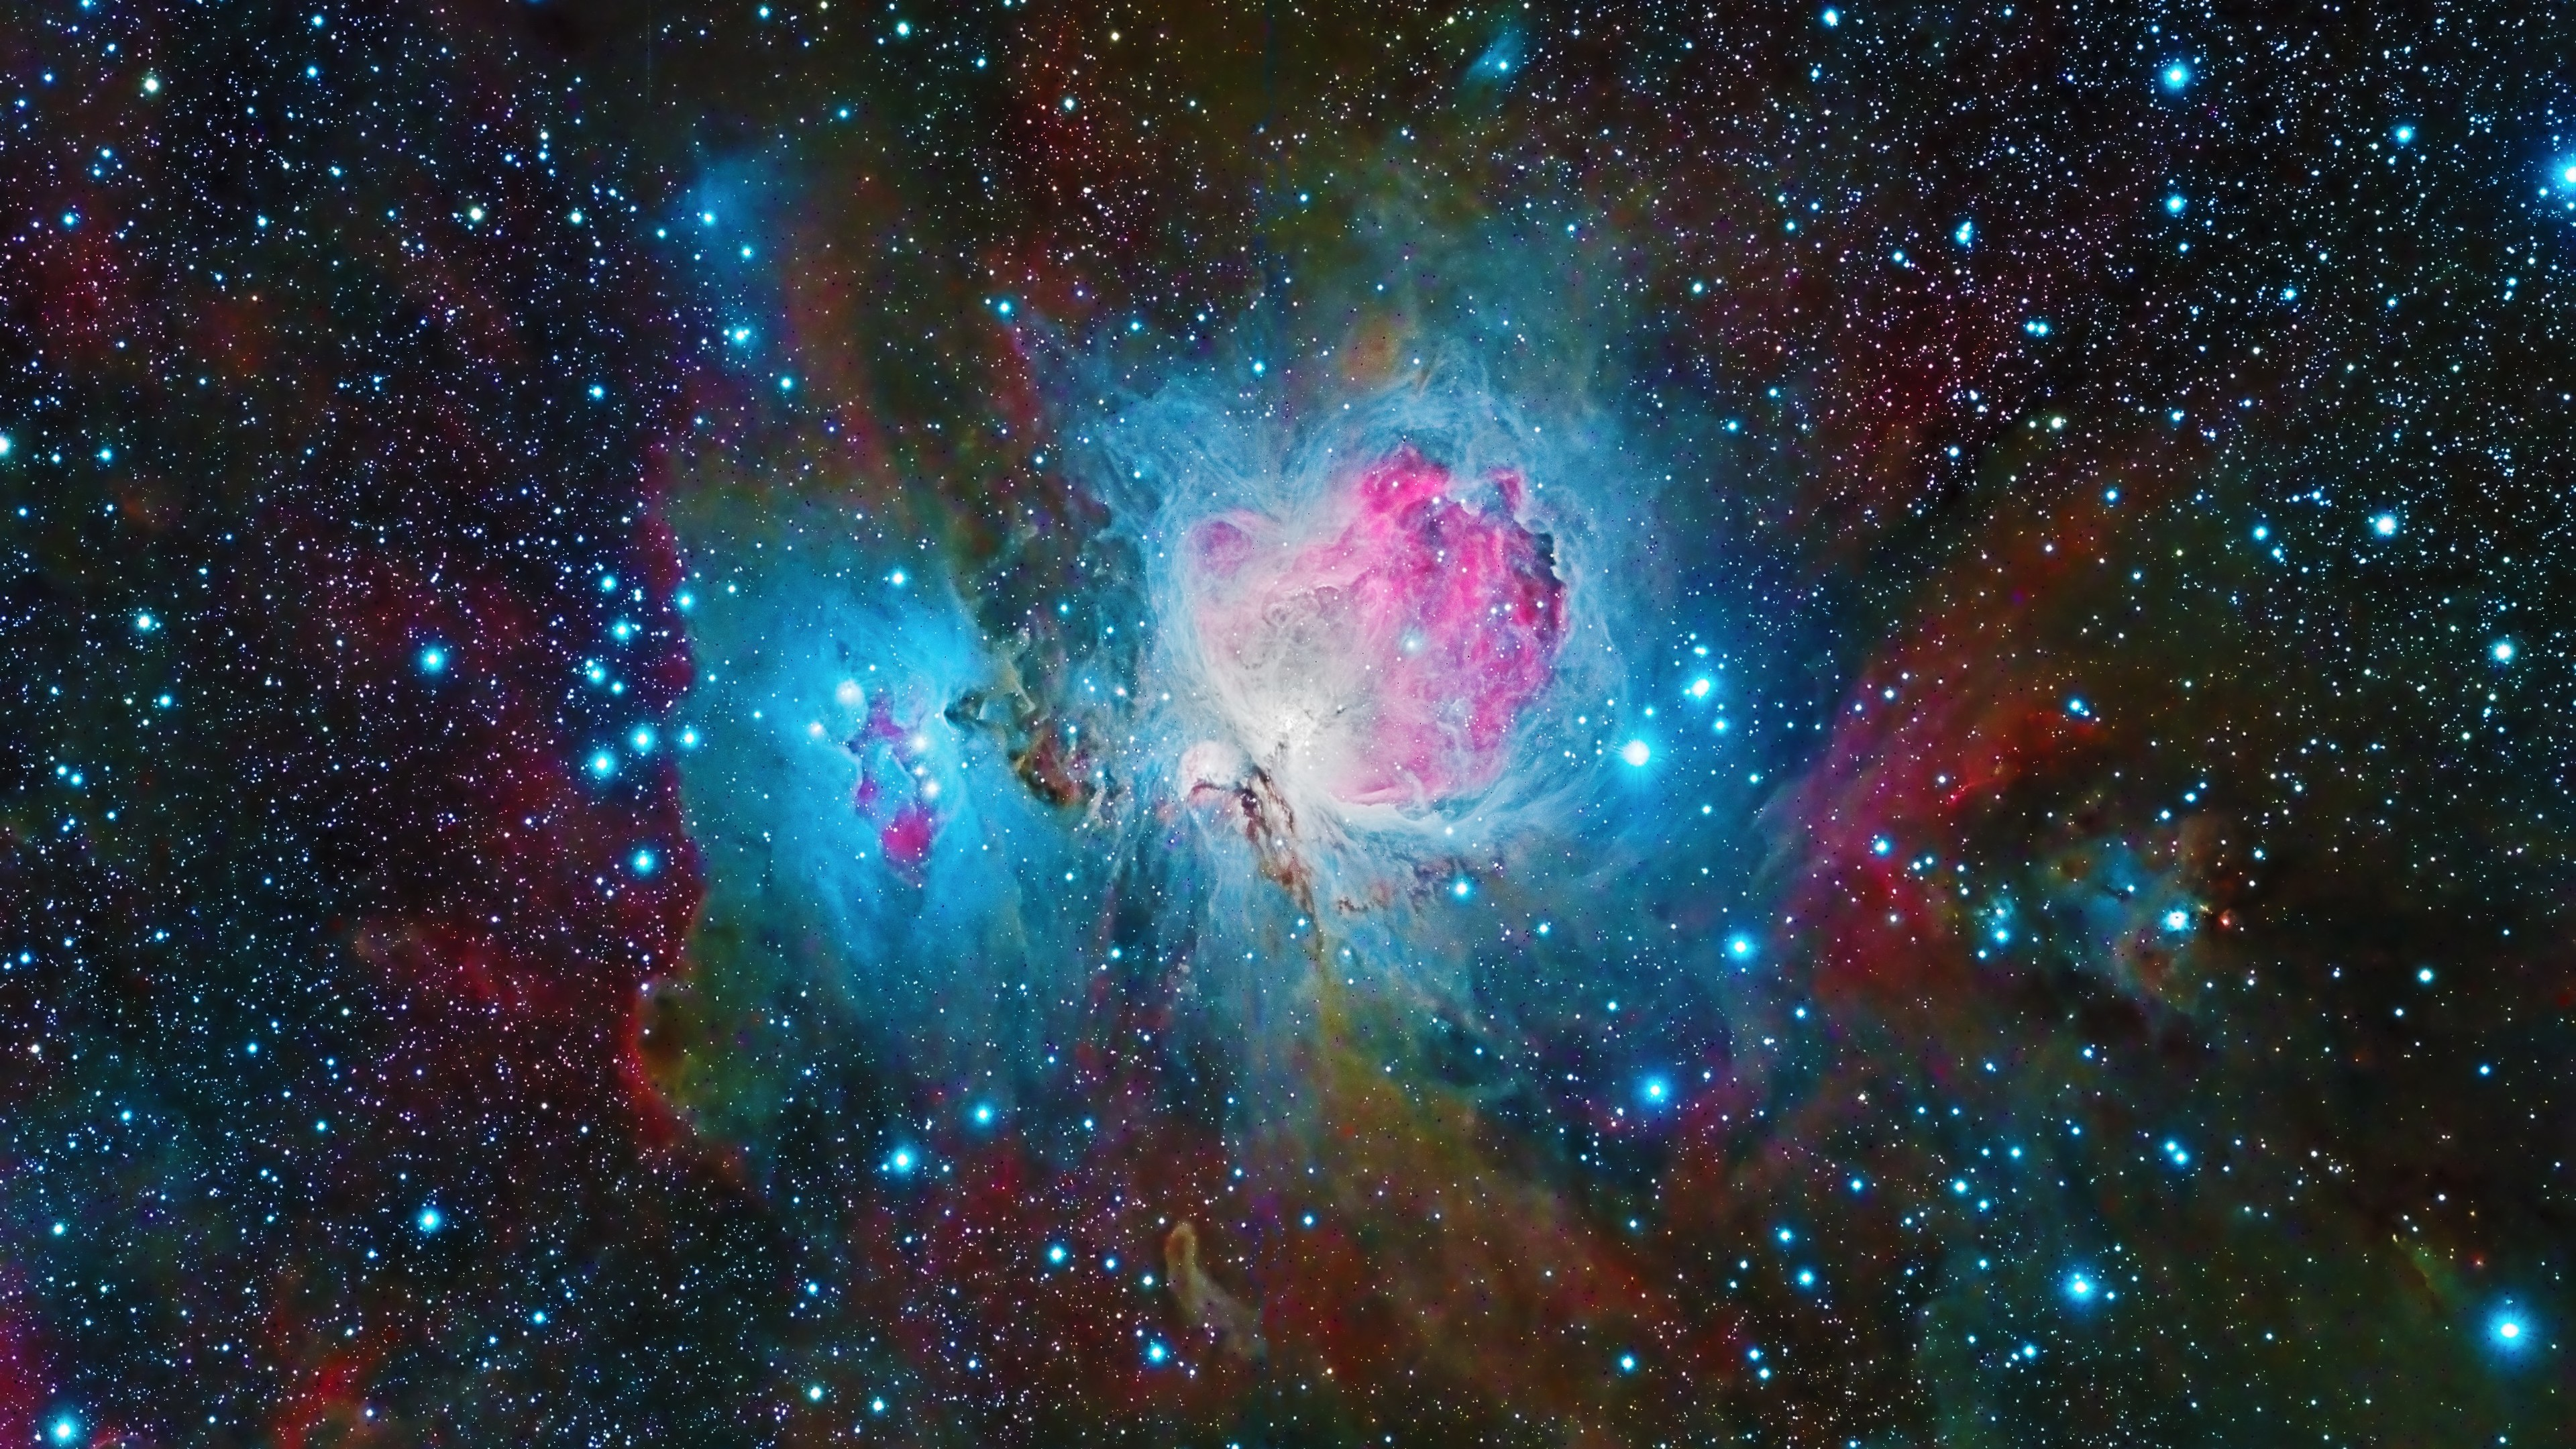 nebula space galaxy colorful 4k 1540140133 - Nebula Space Galaxy Colorful 4k - space wallpapers, nebula wallpapers, hd-wallpapers, galaxy wallpapers, colorful wallpapers, 4k-wallpapers